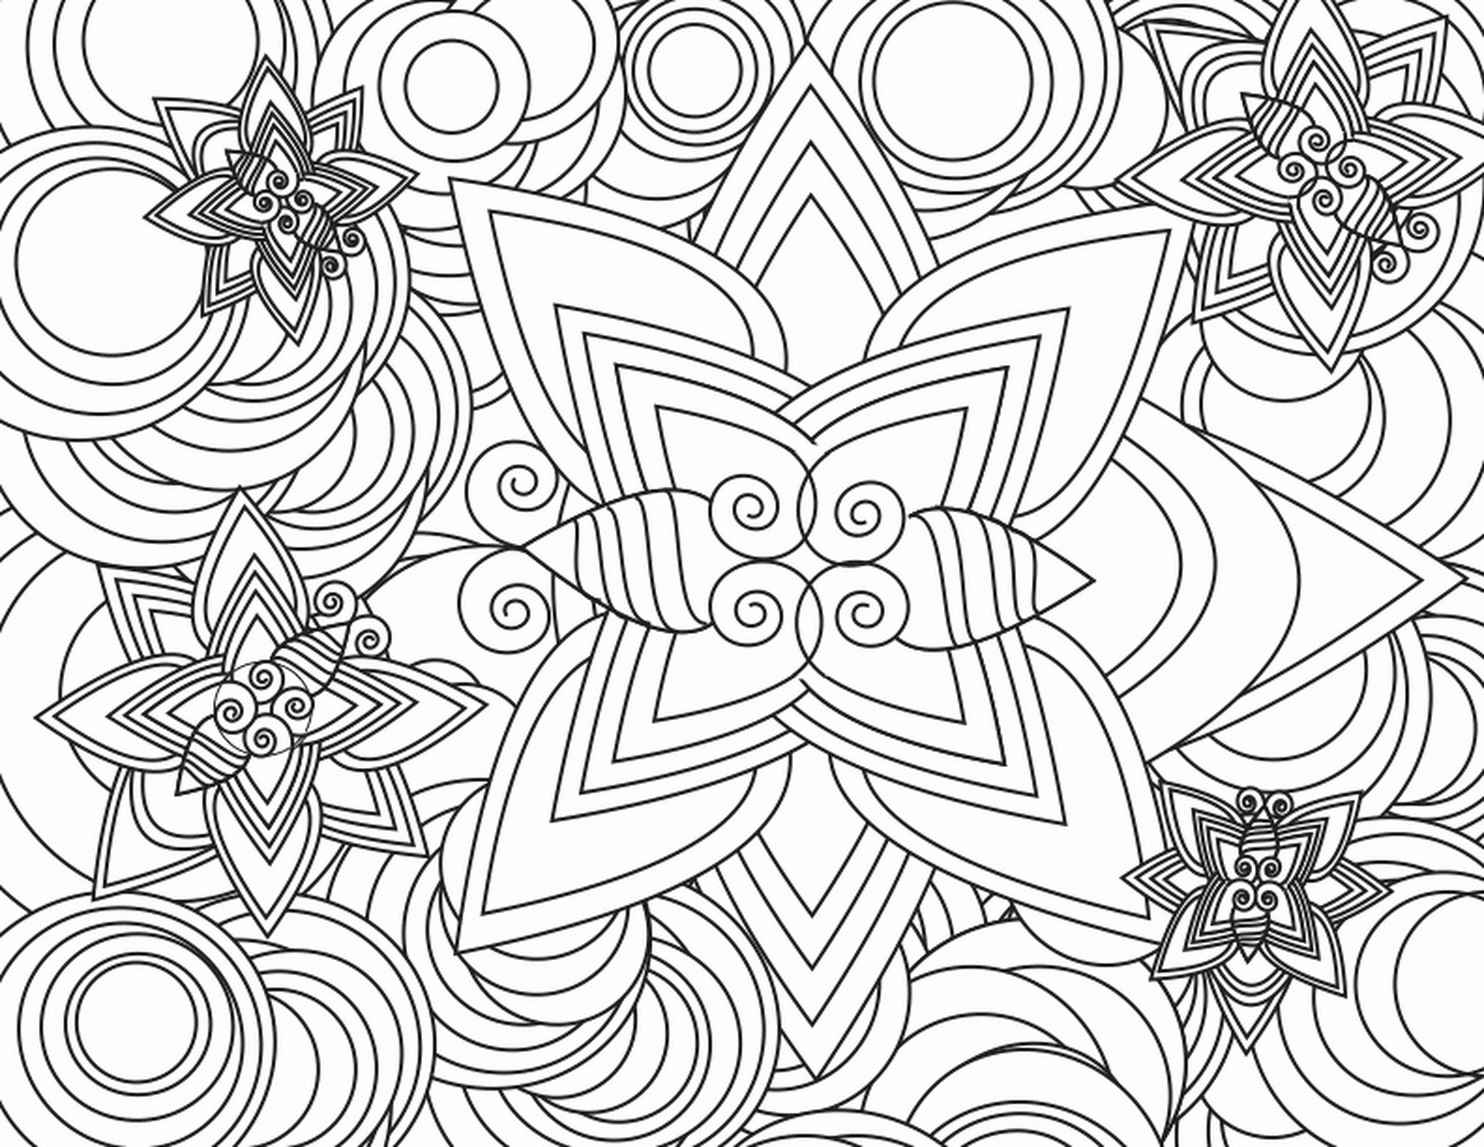 Cool Flowers To Color For Adults